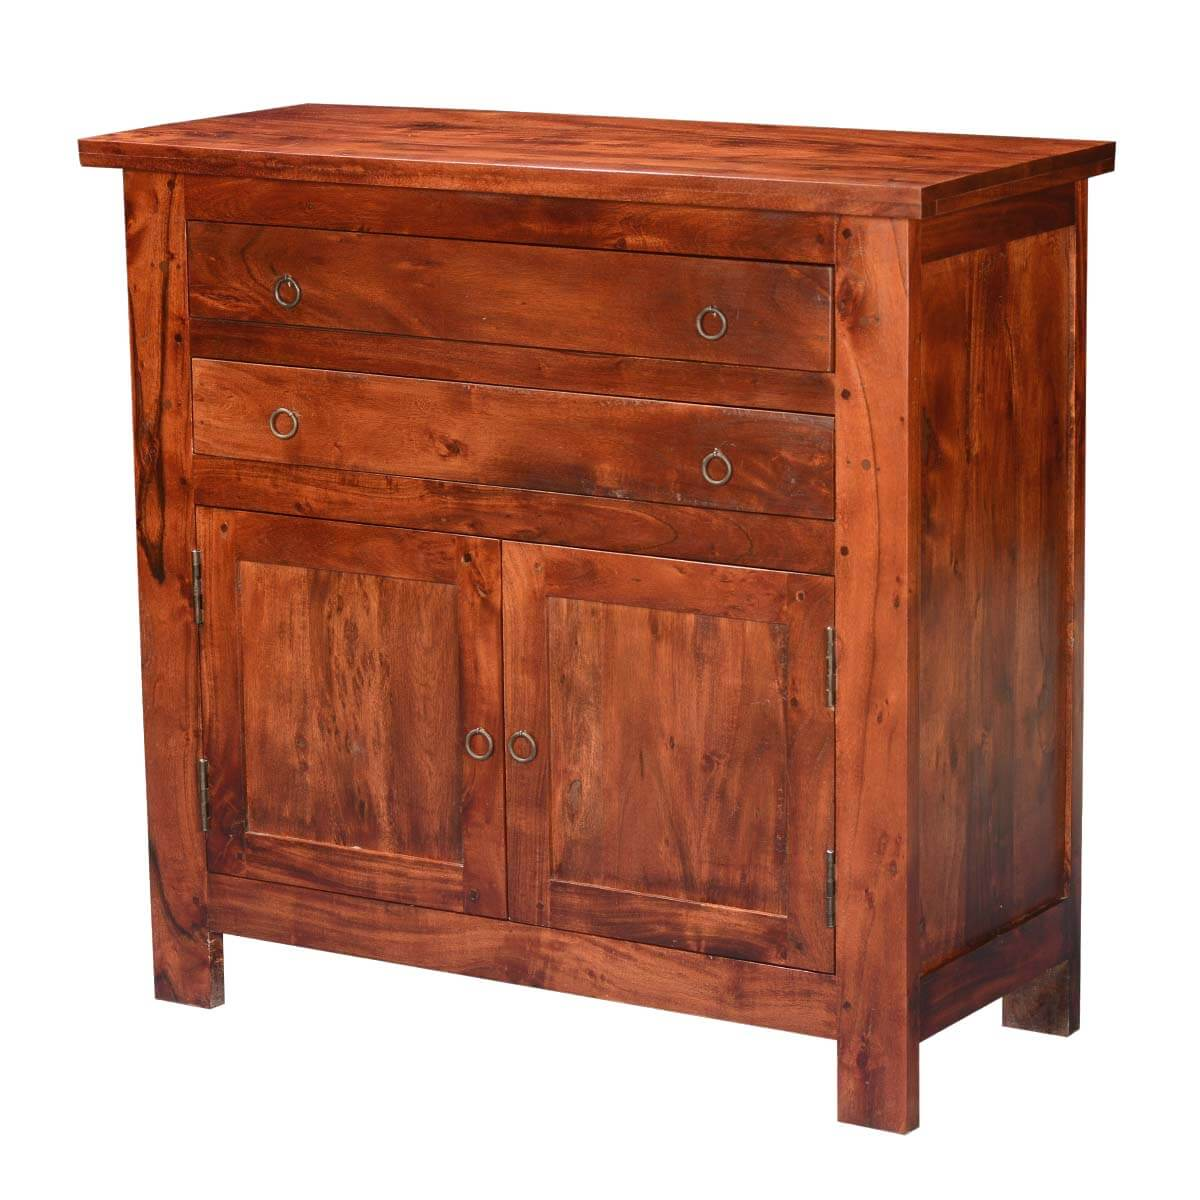 Sideboard Vitrine Mission Classic Acacia Wood Buffet Sideboard Cabinet